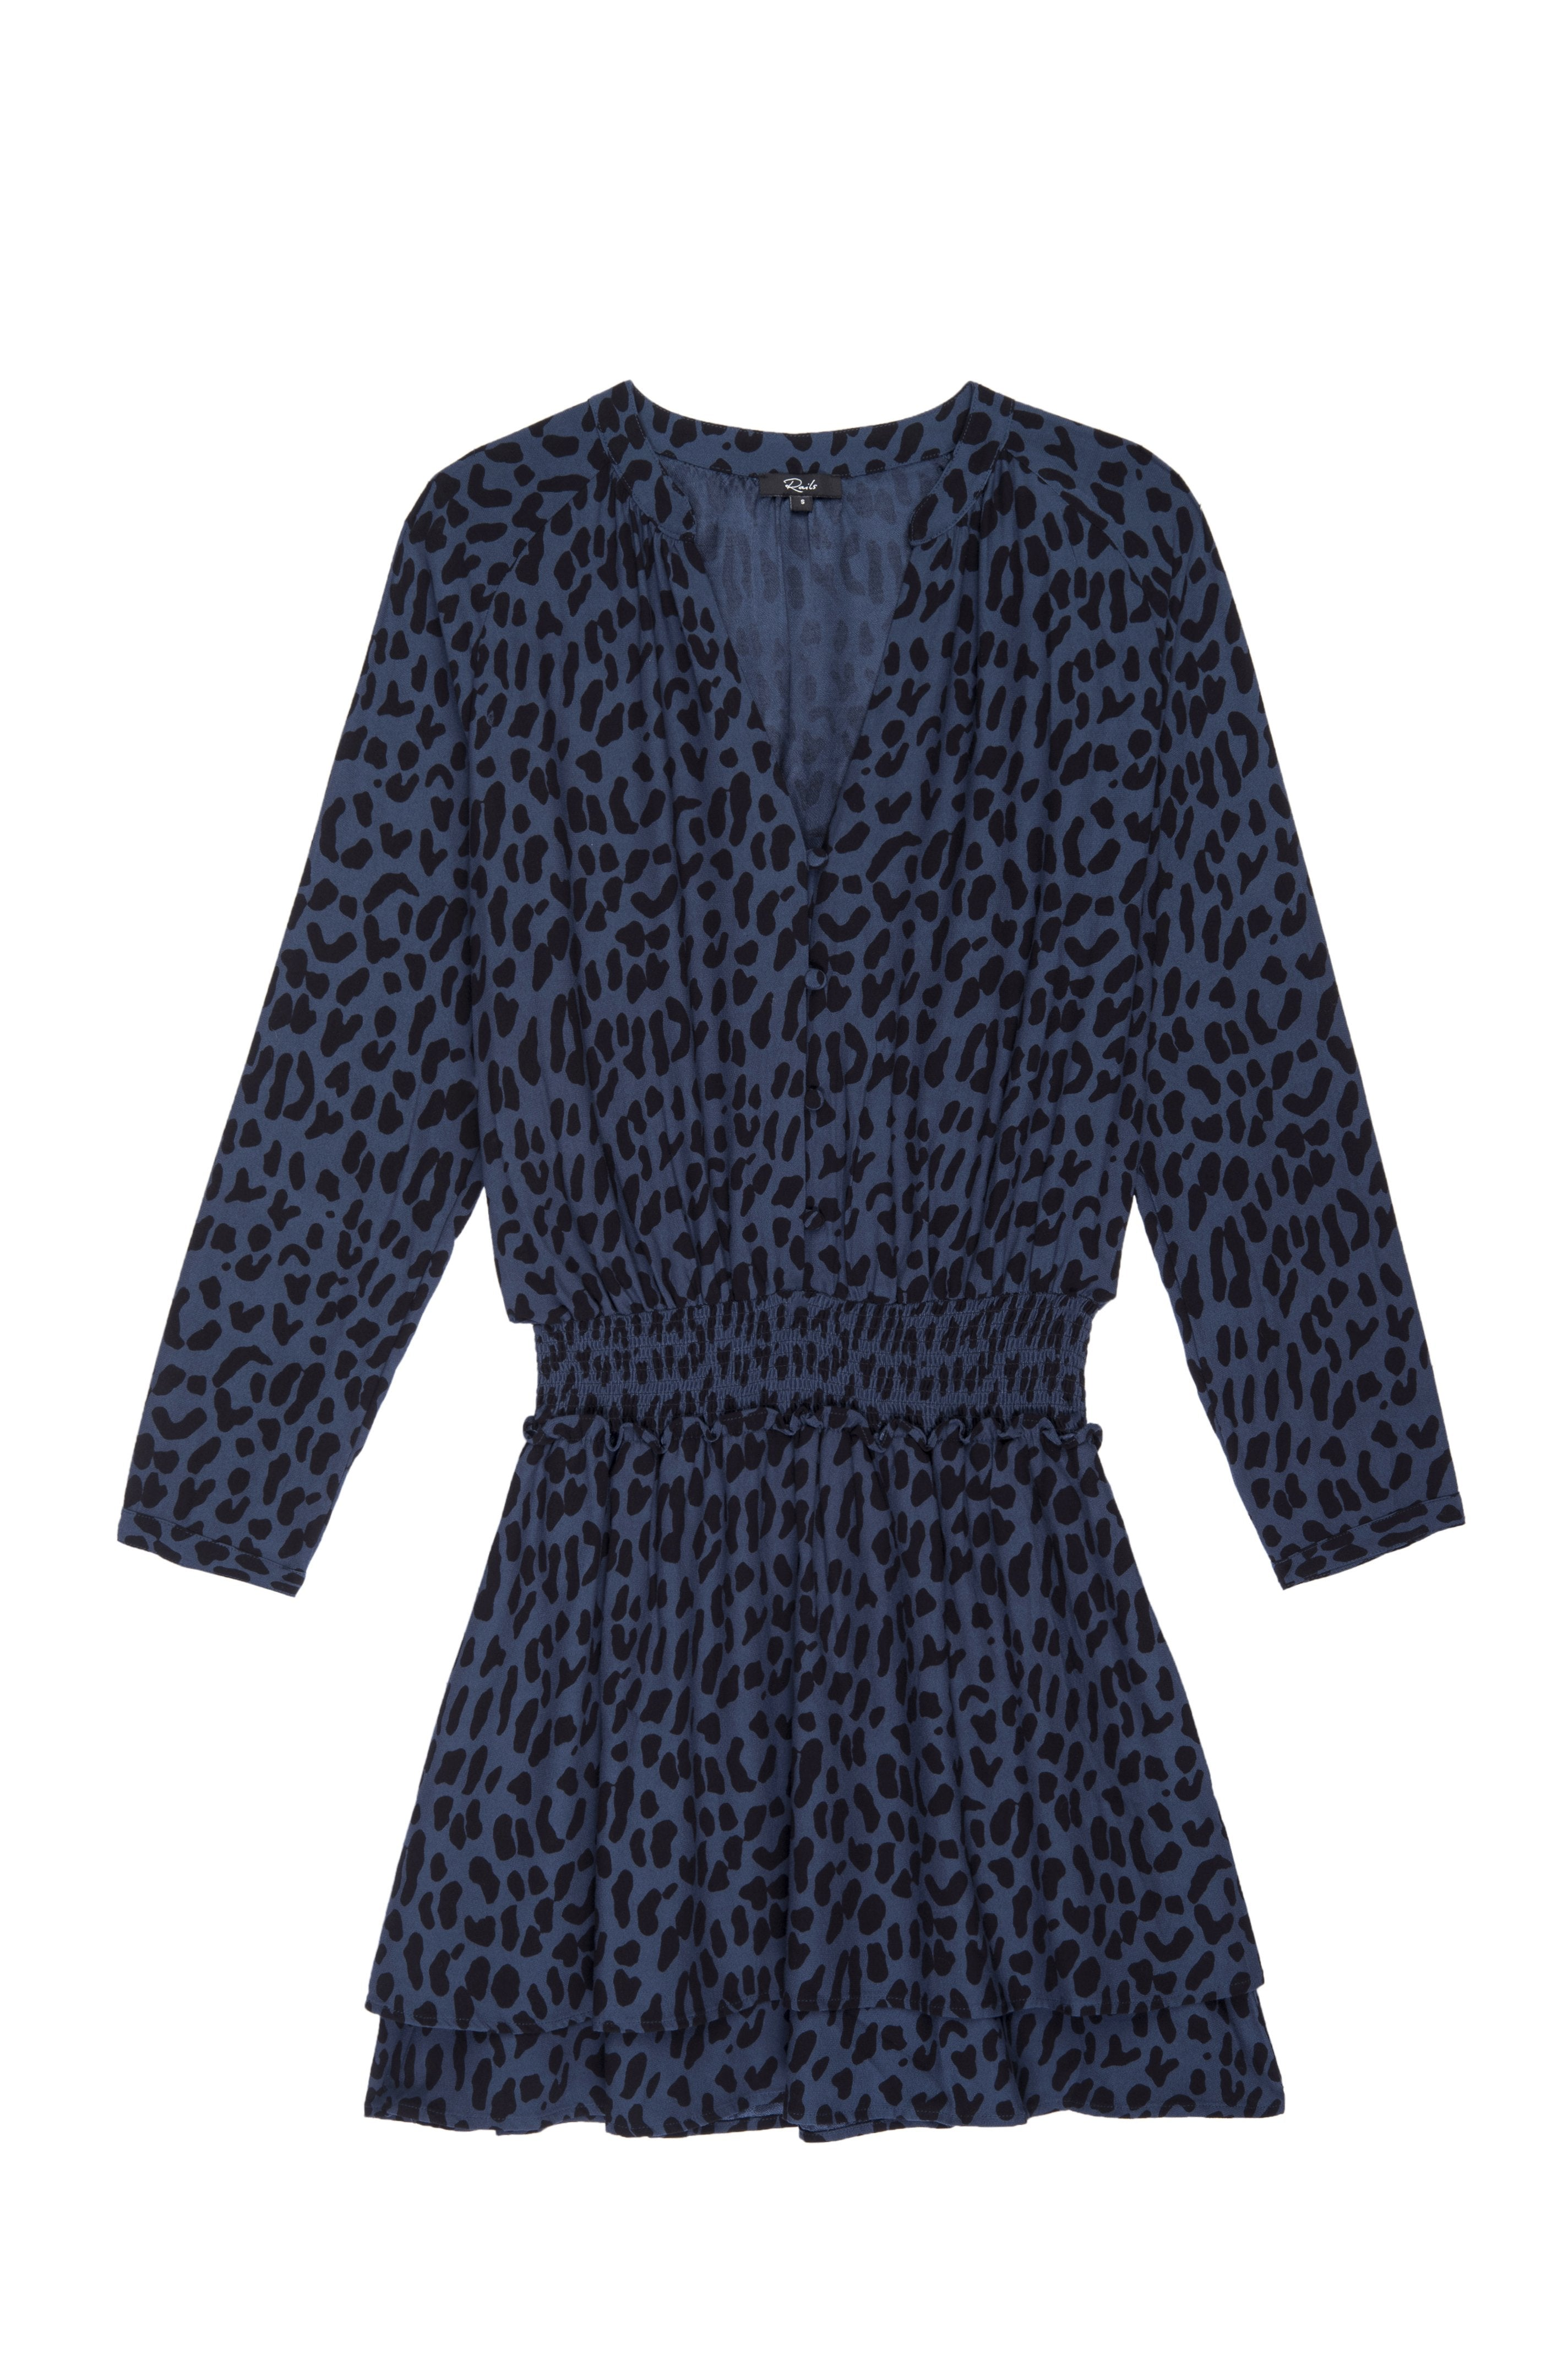 Jasmine Dress in Azure Leopard